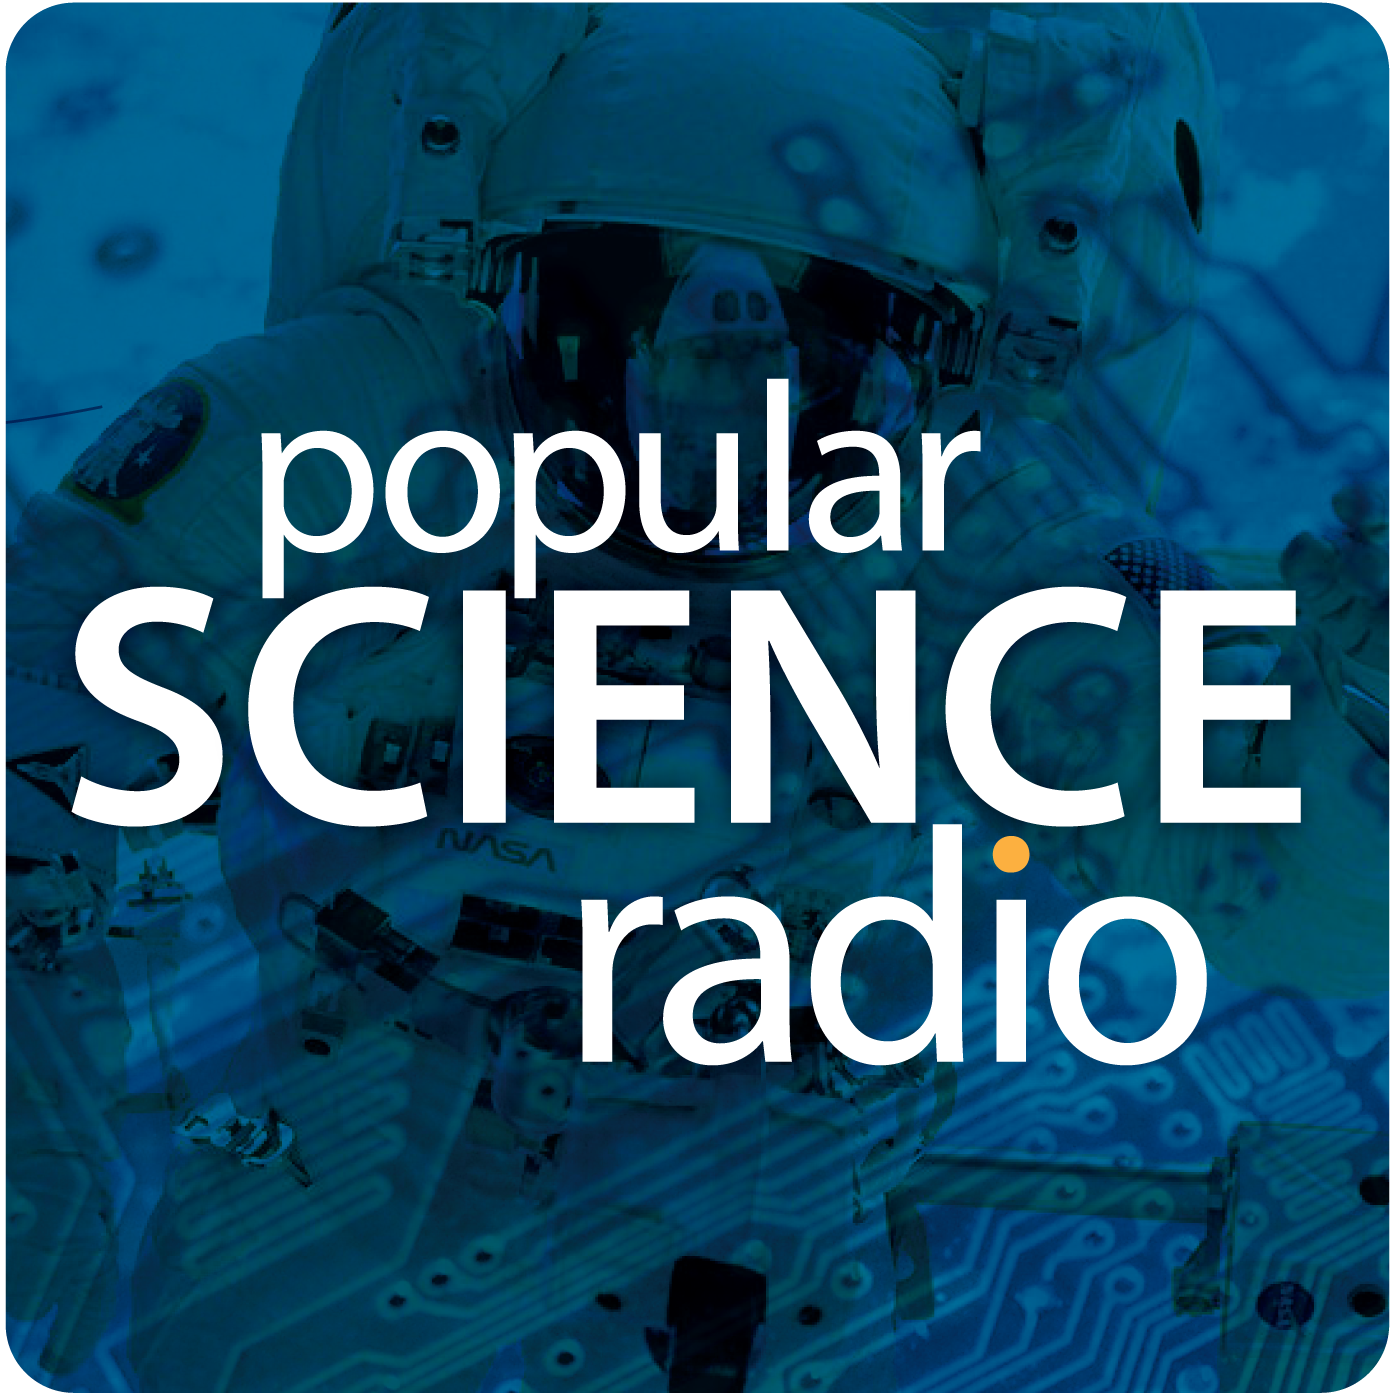 Popular Science Radio